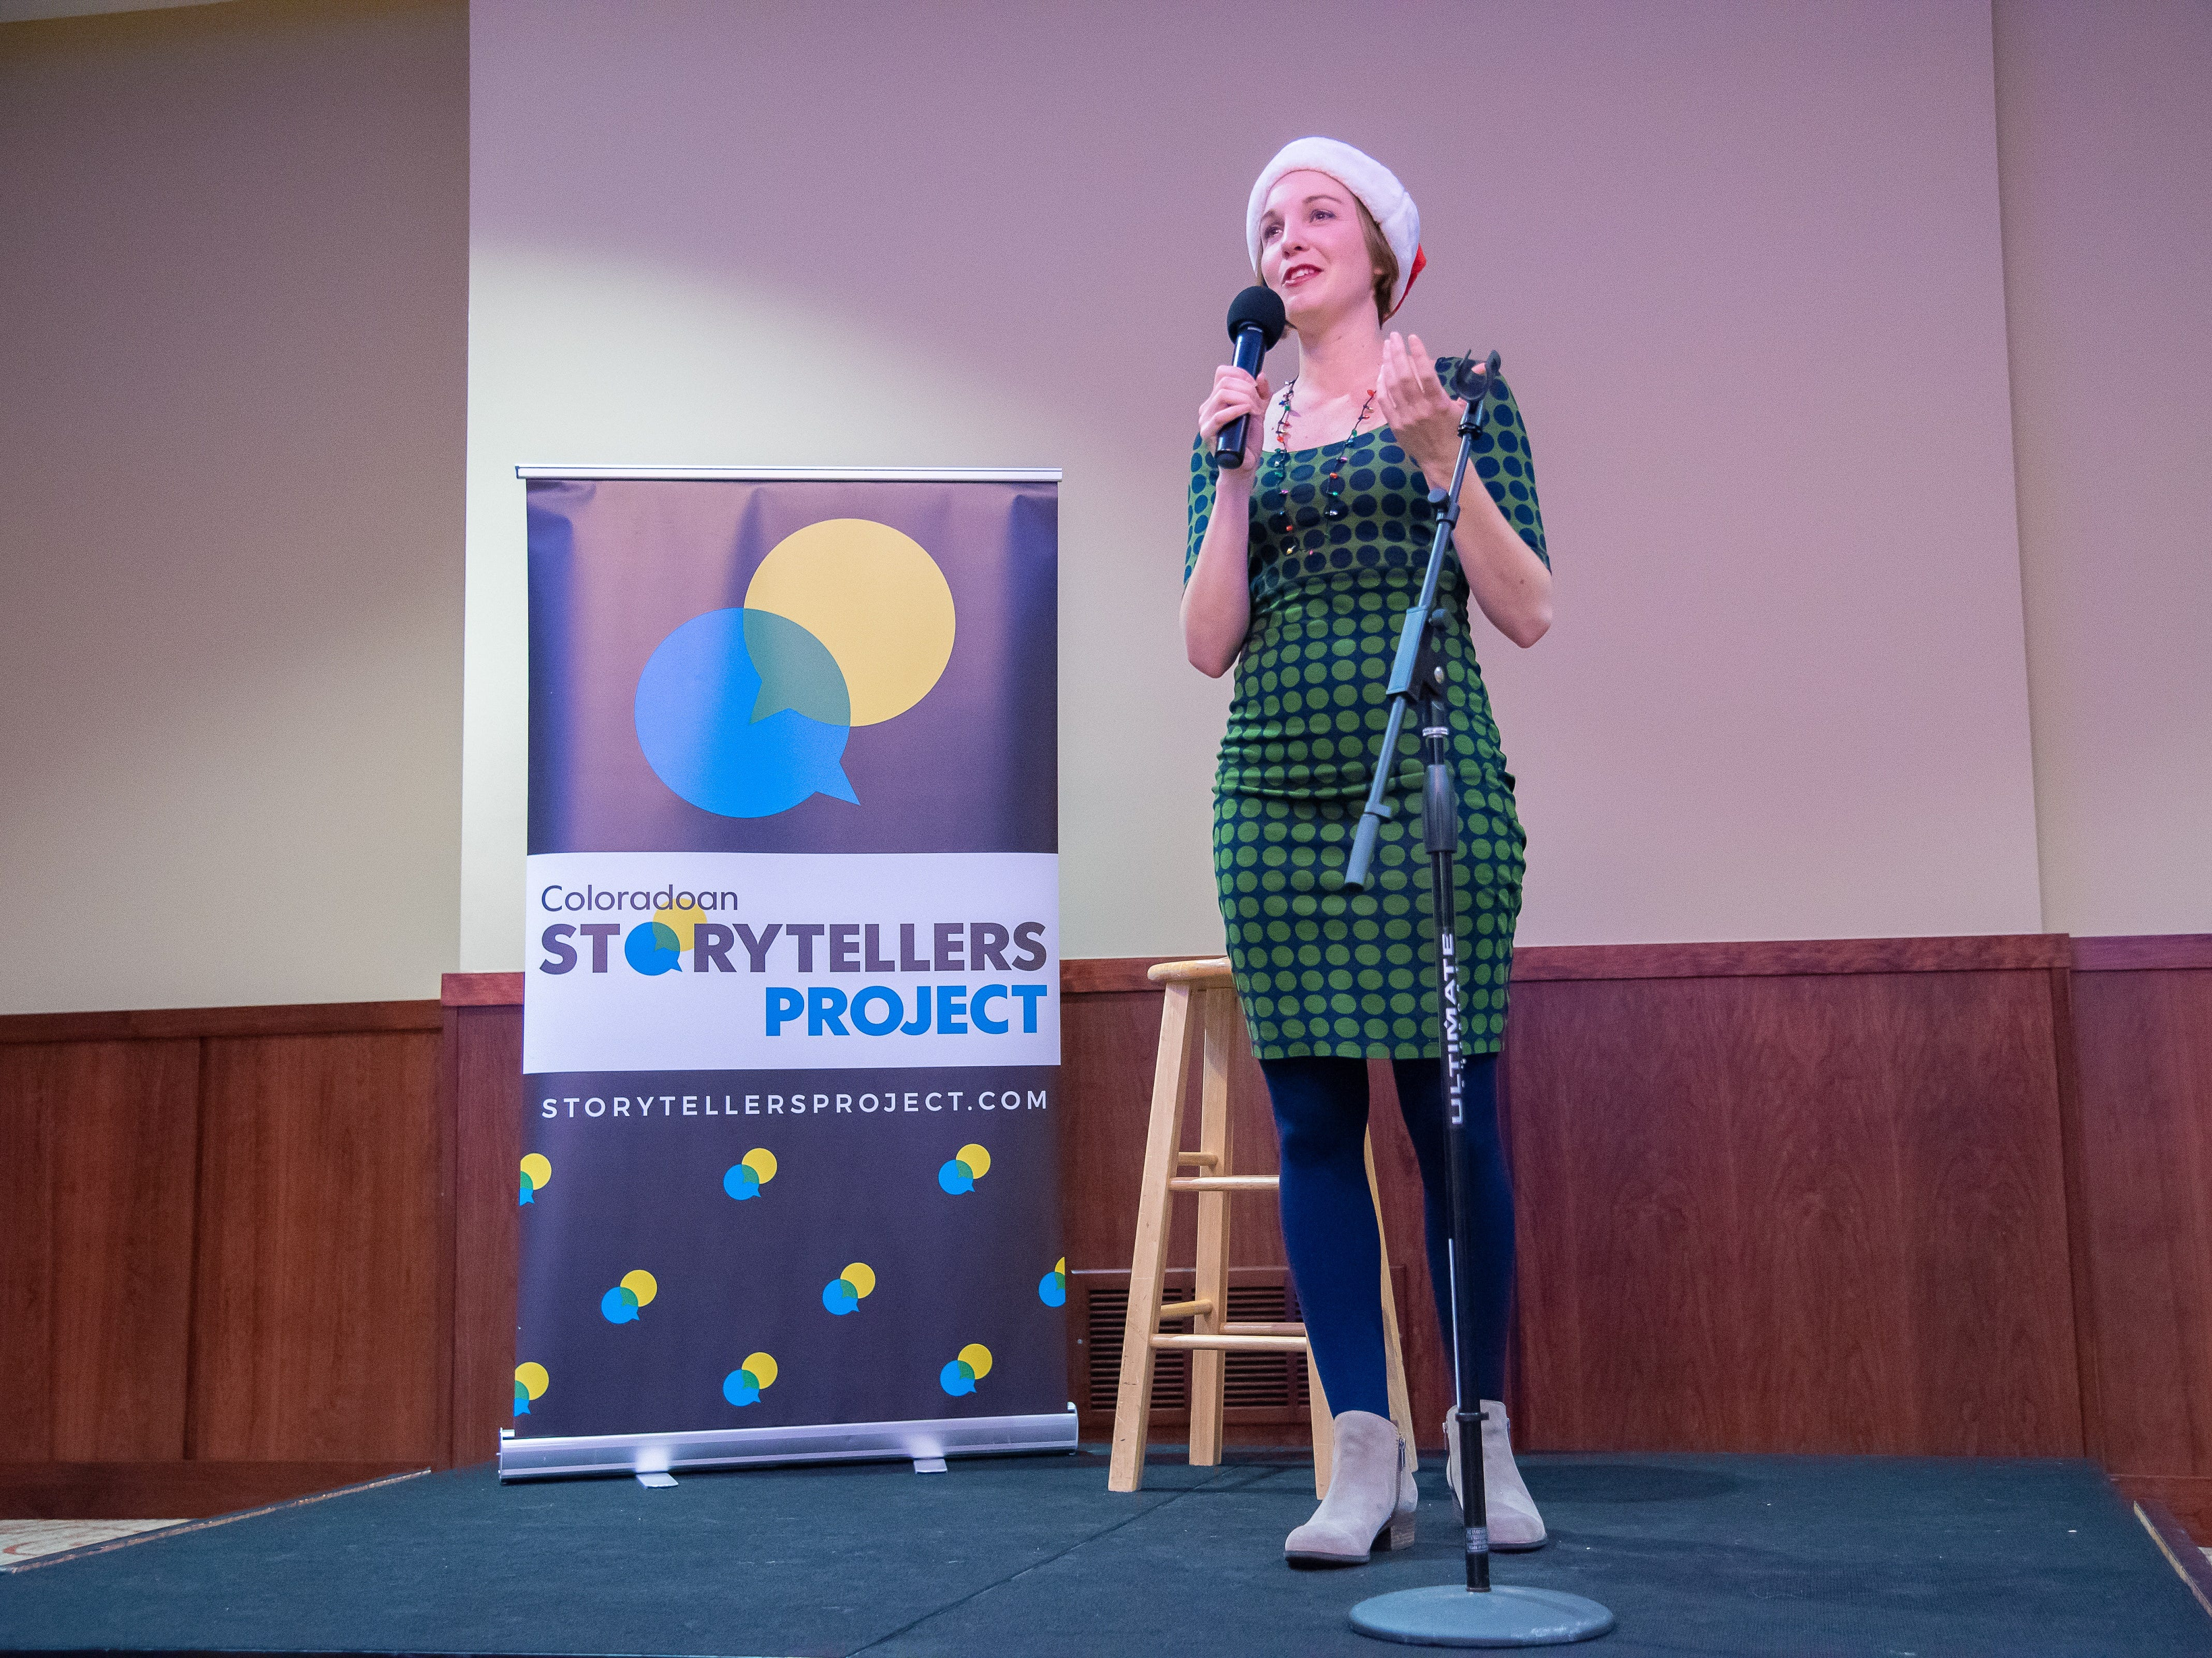 Storyteller Whitney Trotta speaks of her grandfather's life during the Coloradoan Storytellers Project at Lincoln Center on Tuesday, December 11, 2018.